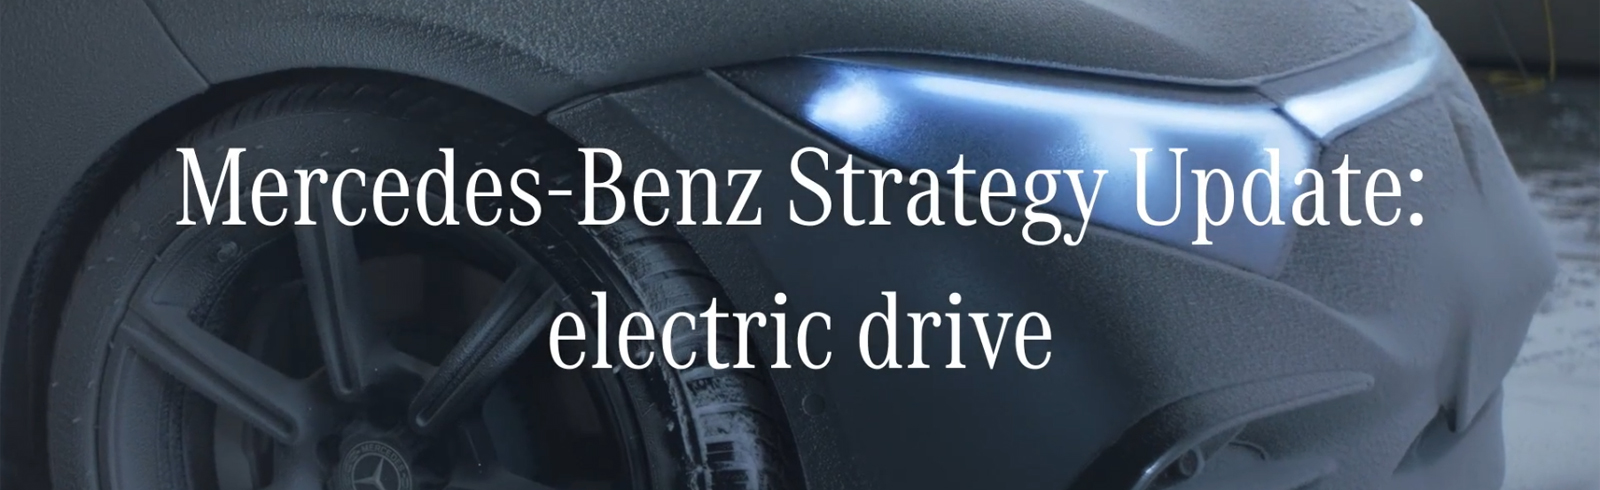 Mercedes-Benz Strategy Update 2021 - will go all-electric, including Maybach, AMG, G-class